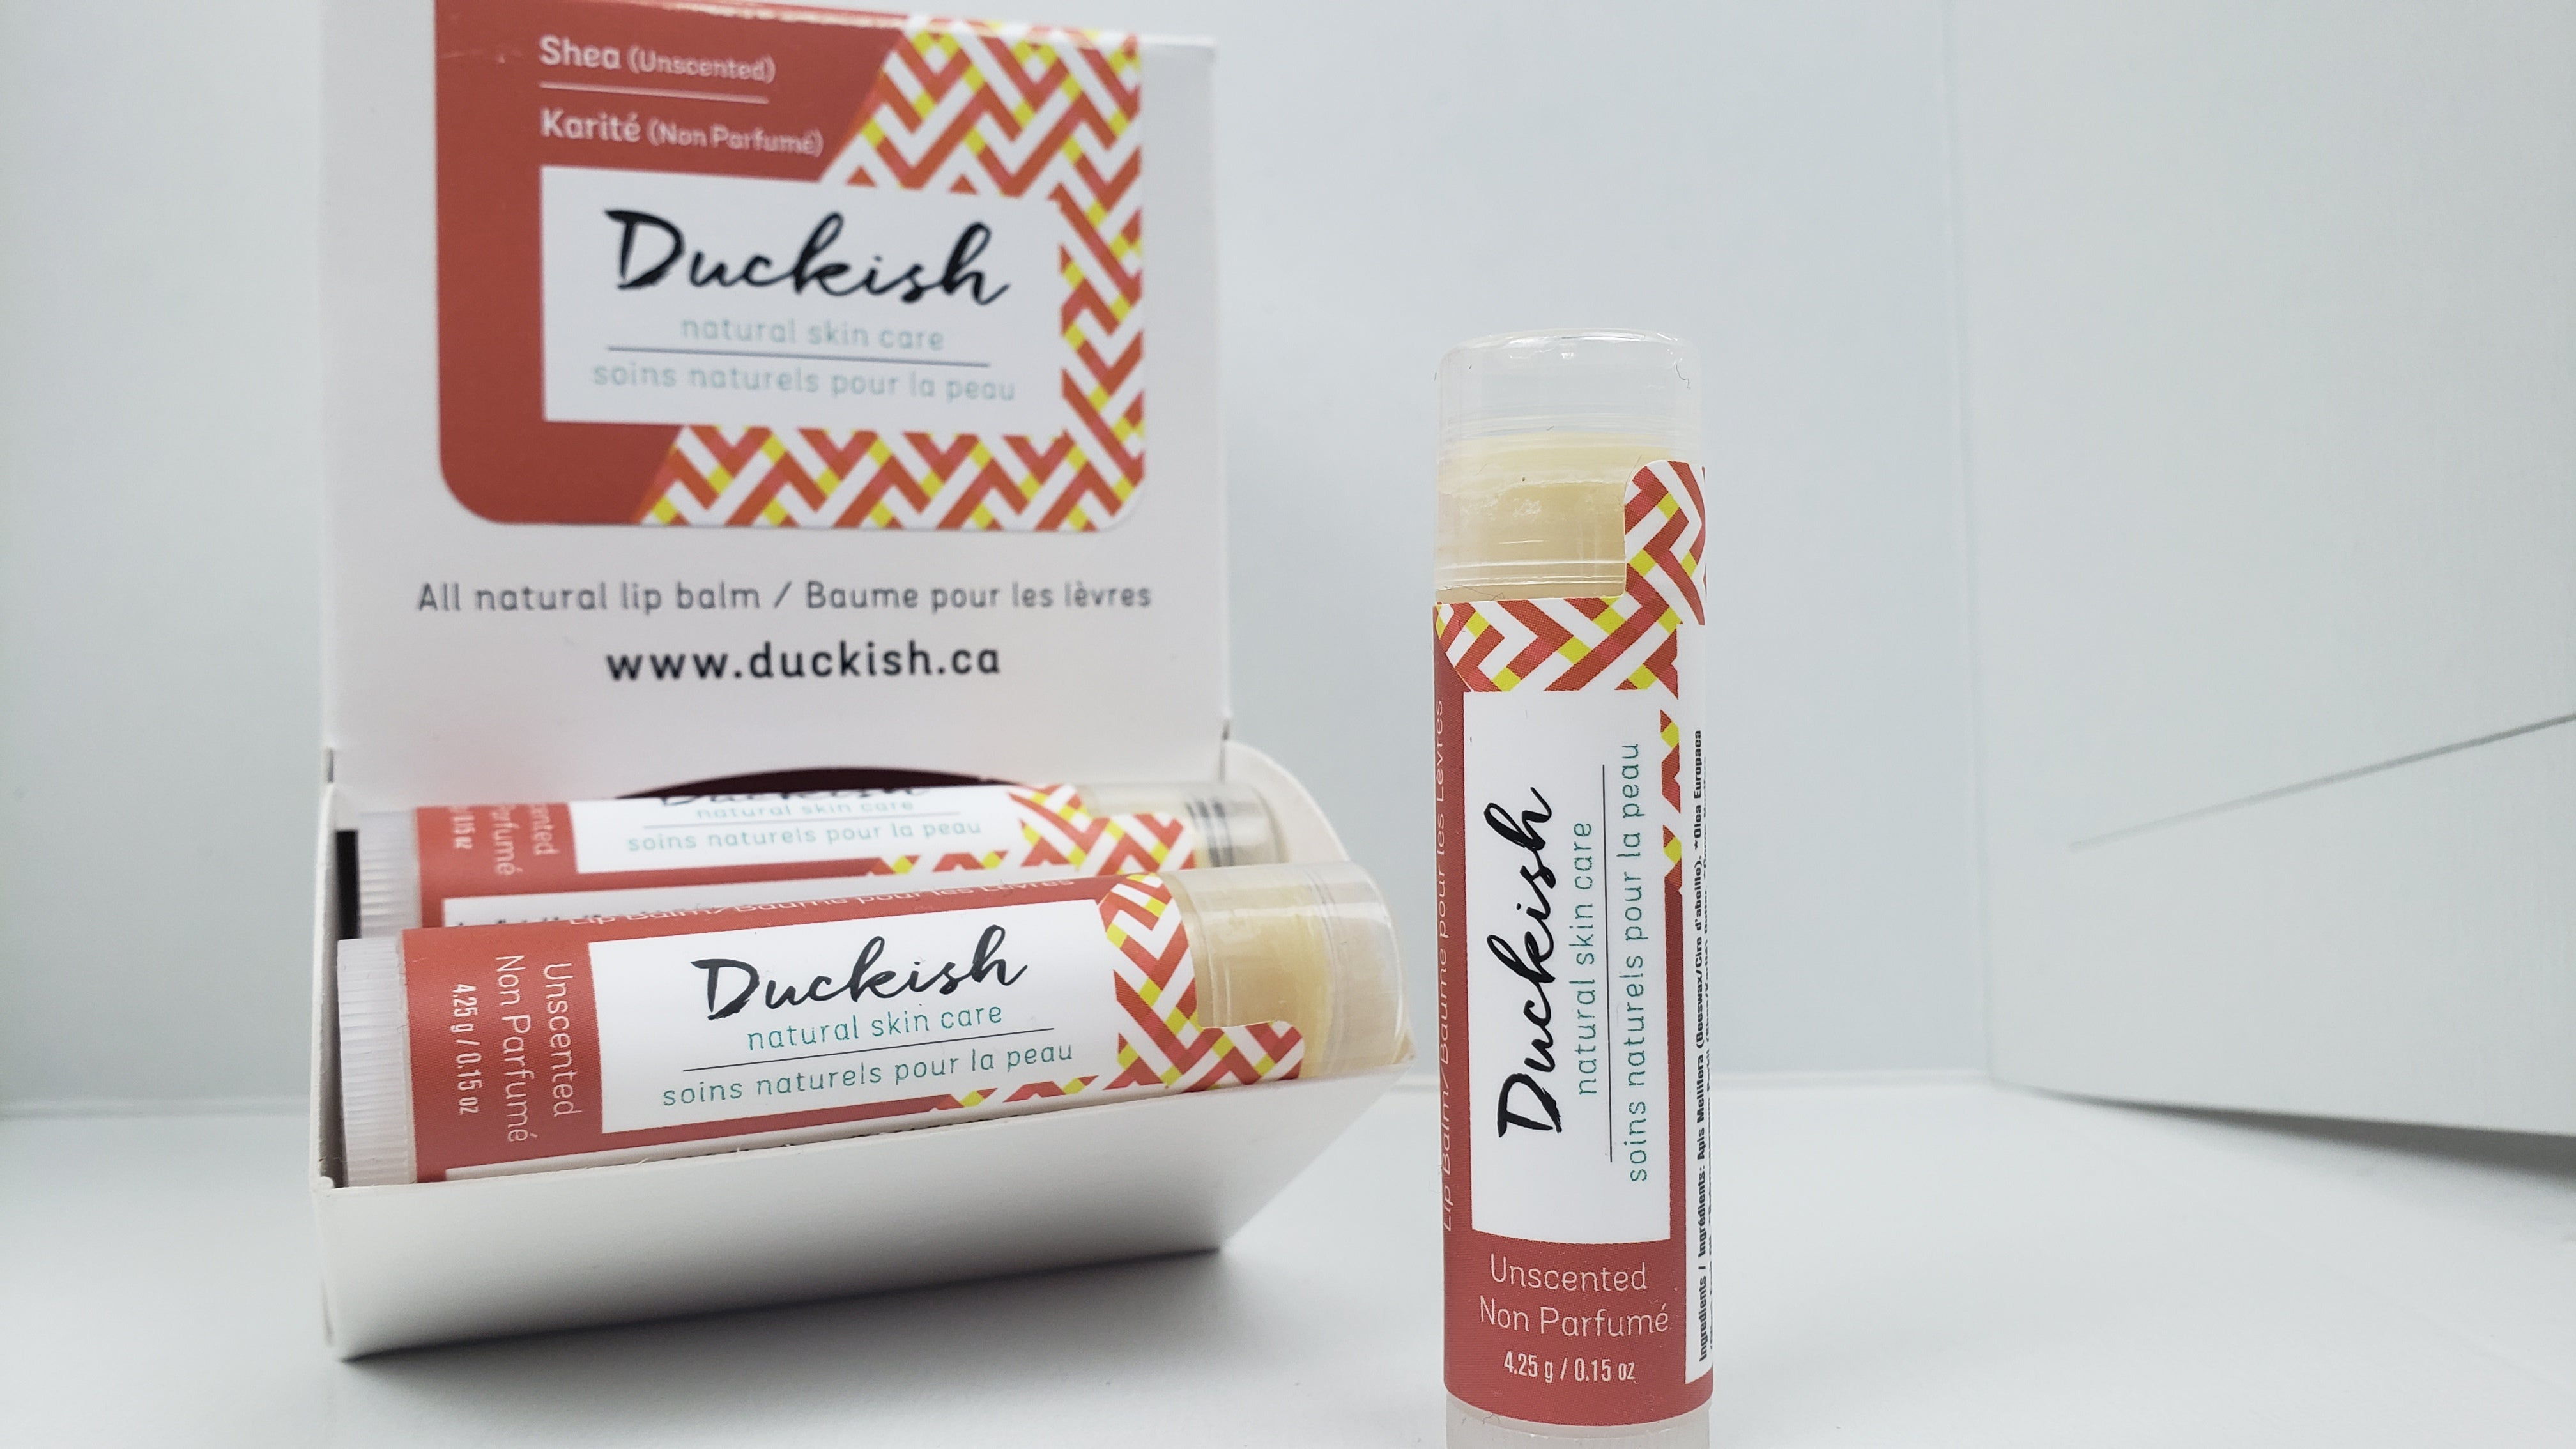 DUCKISH - Unscented Natural Lip Balm